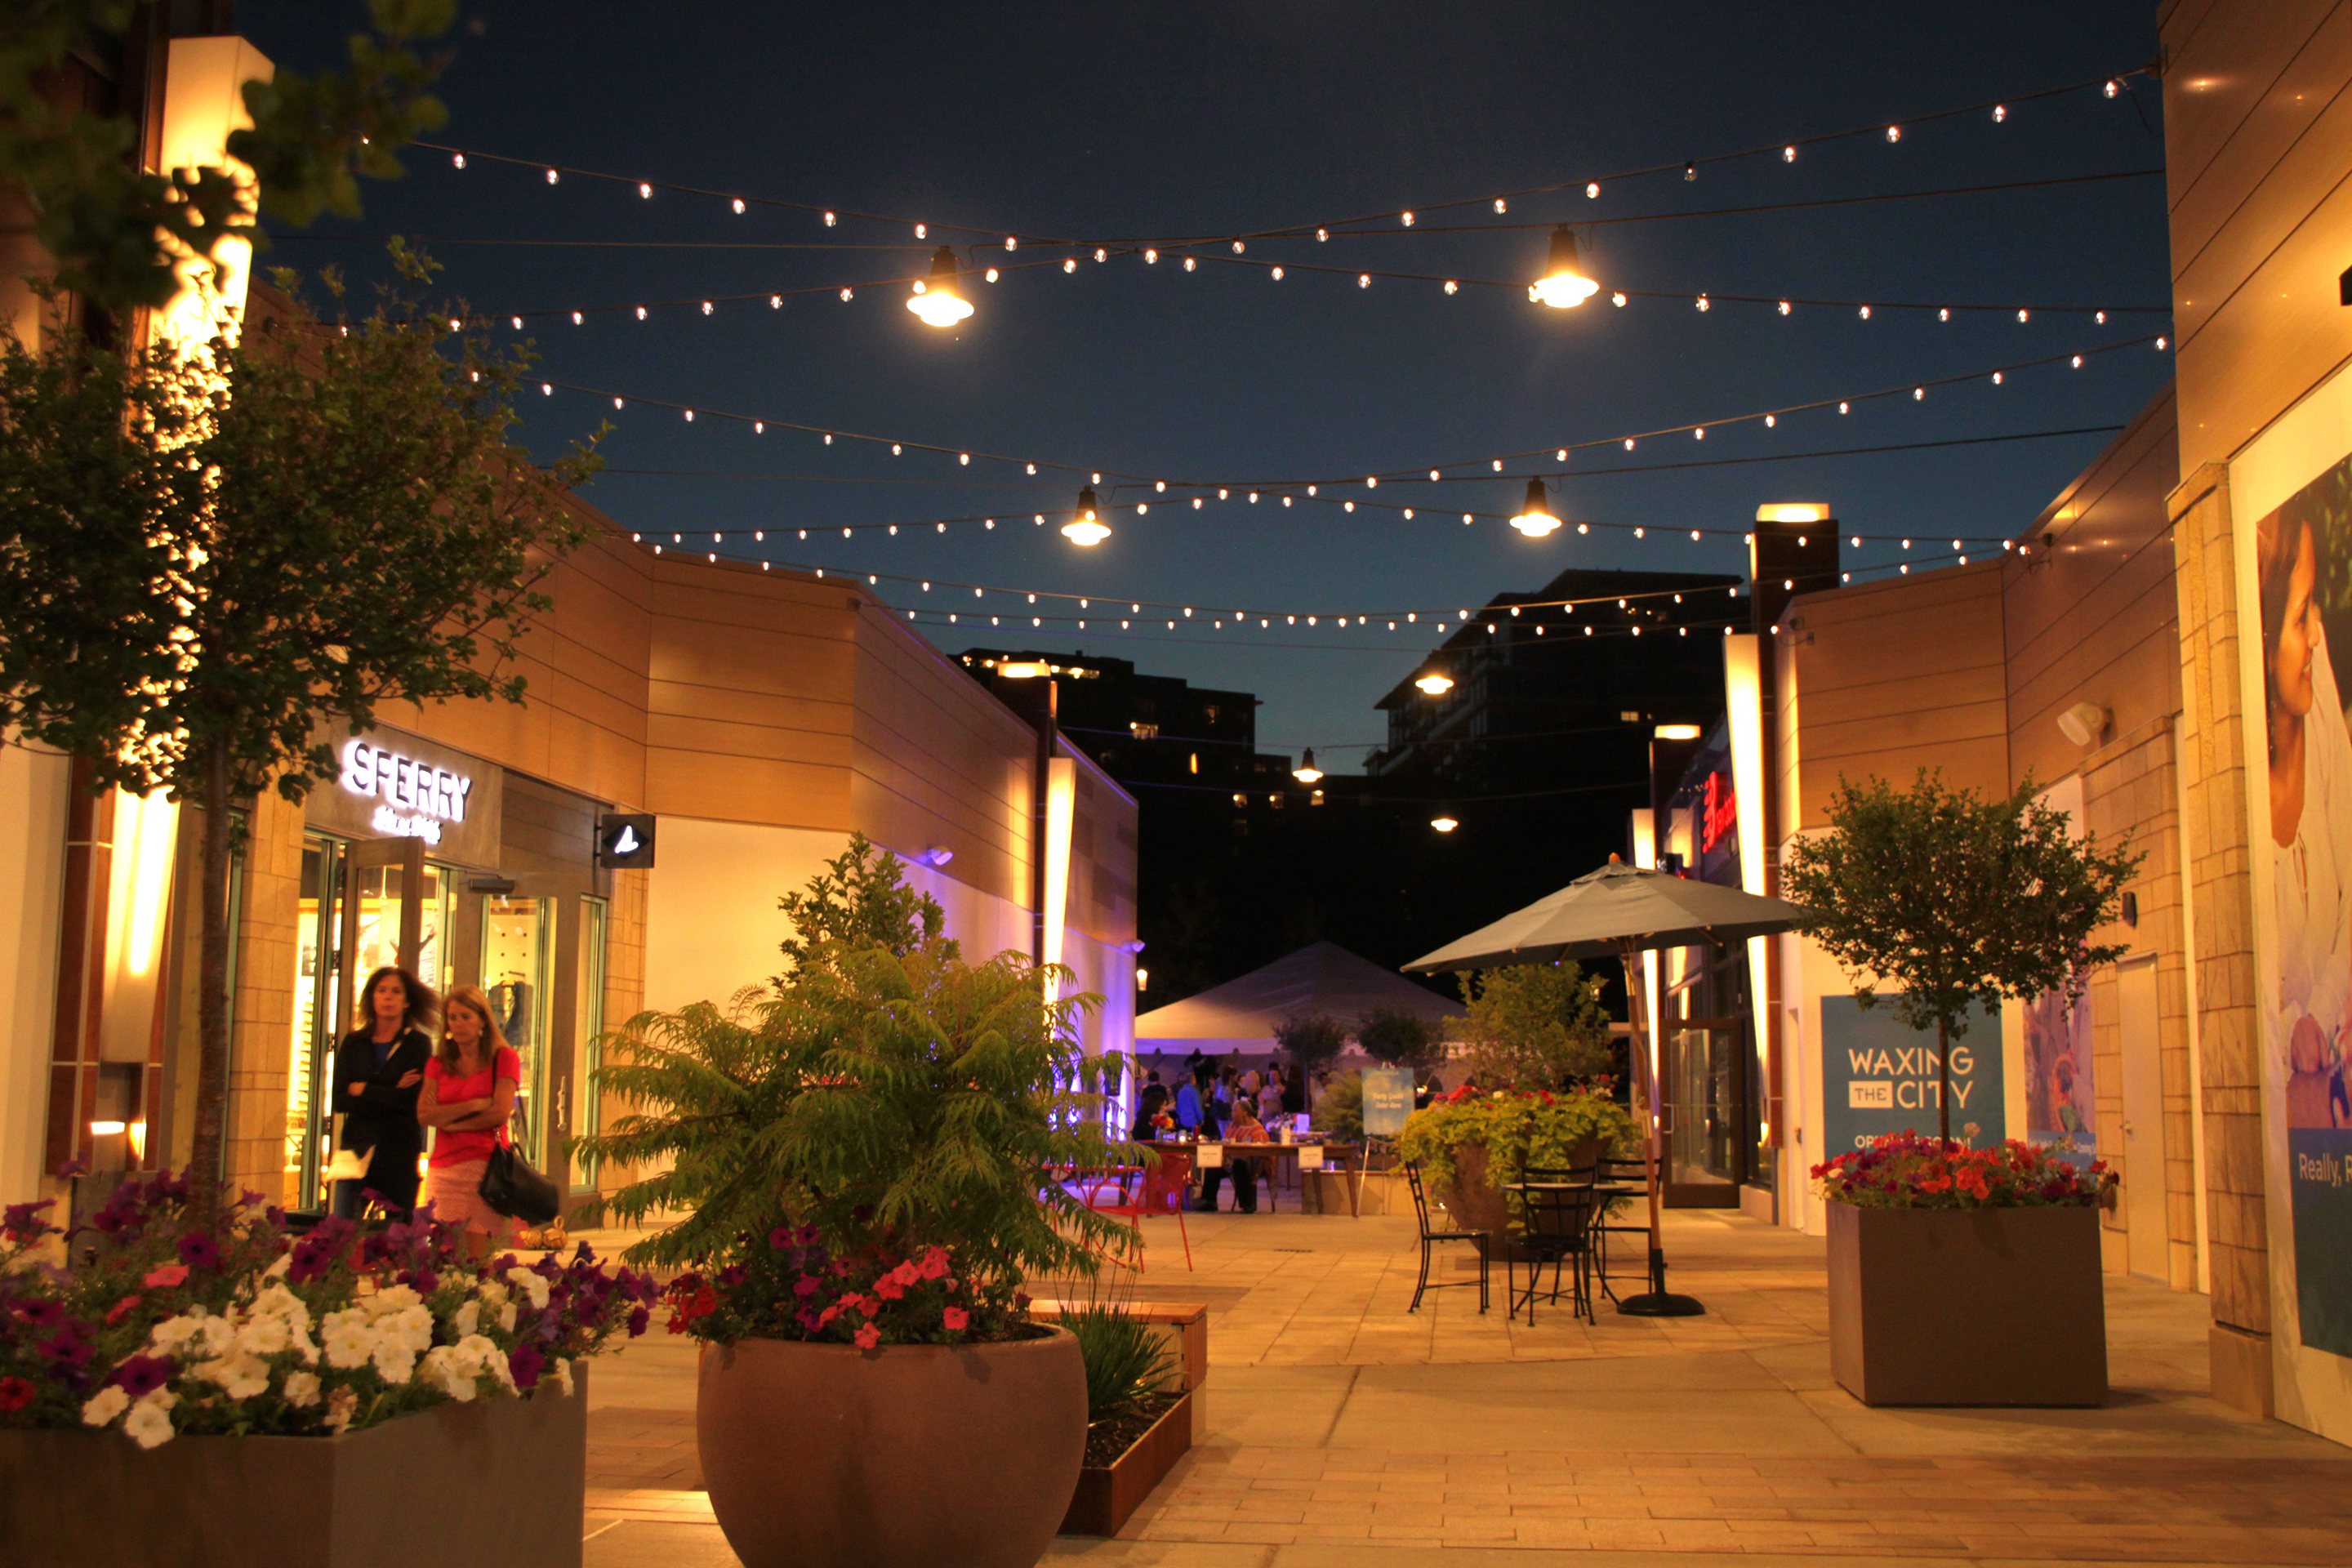 The renovation of Hilldale shopping center involved reinvigorating a stable but aging shopping mall through a multi-use infill approach.